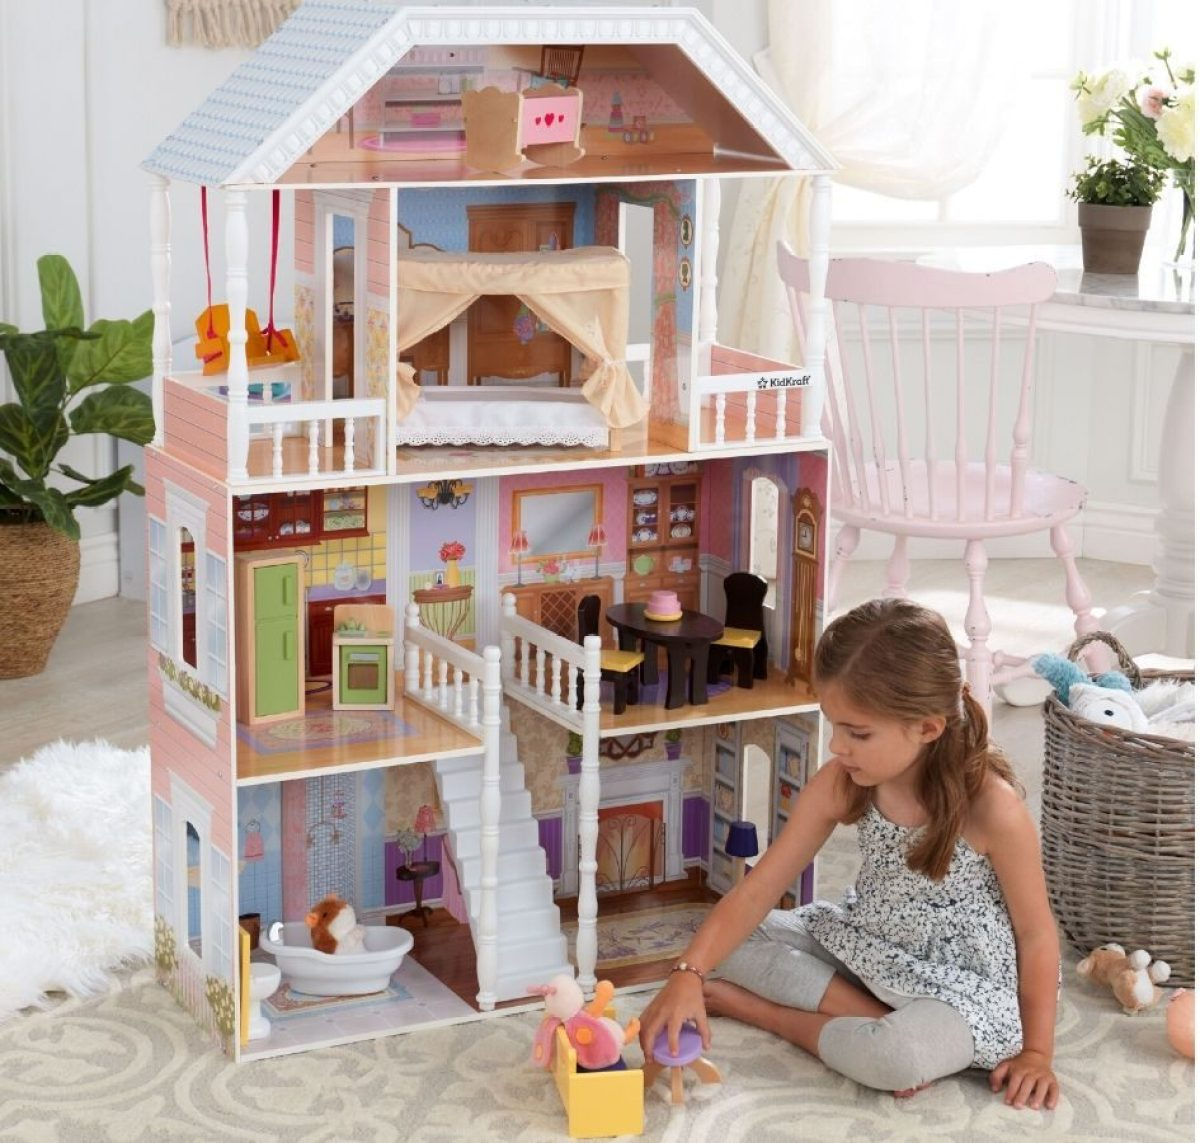 Little girl playing on floor with giant dollhouse